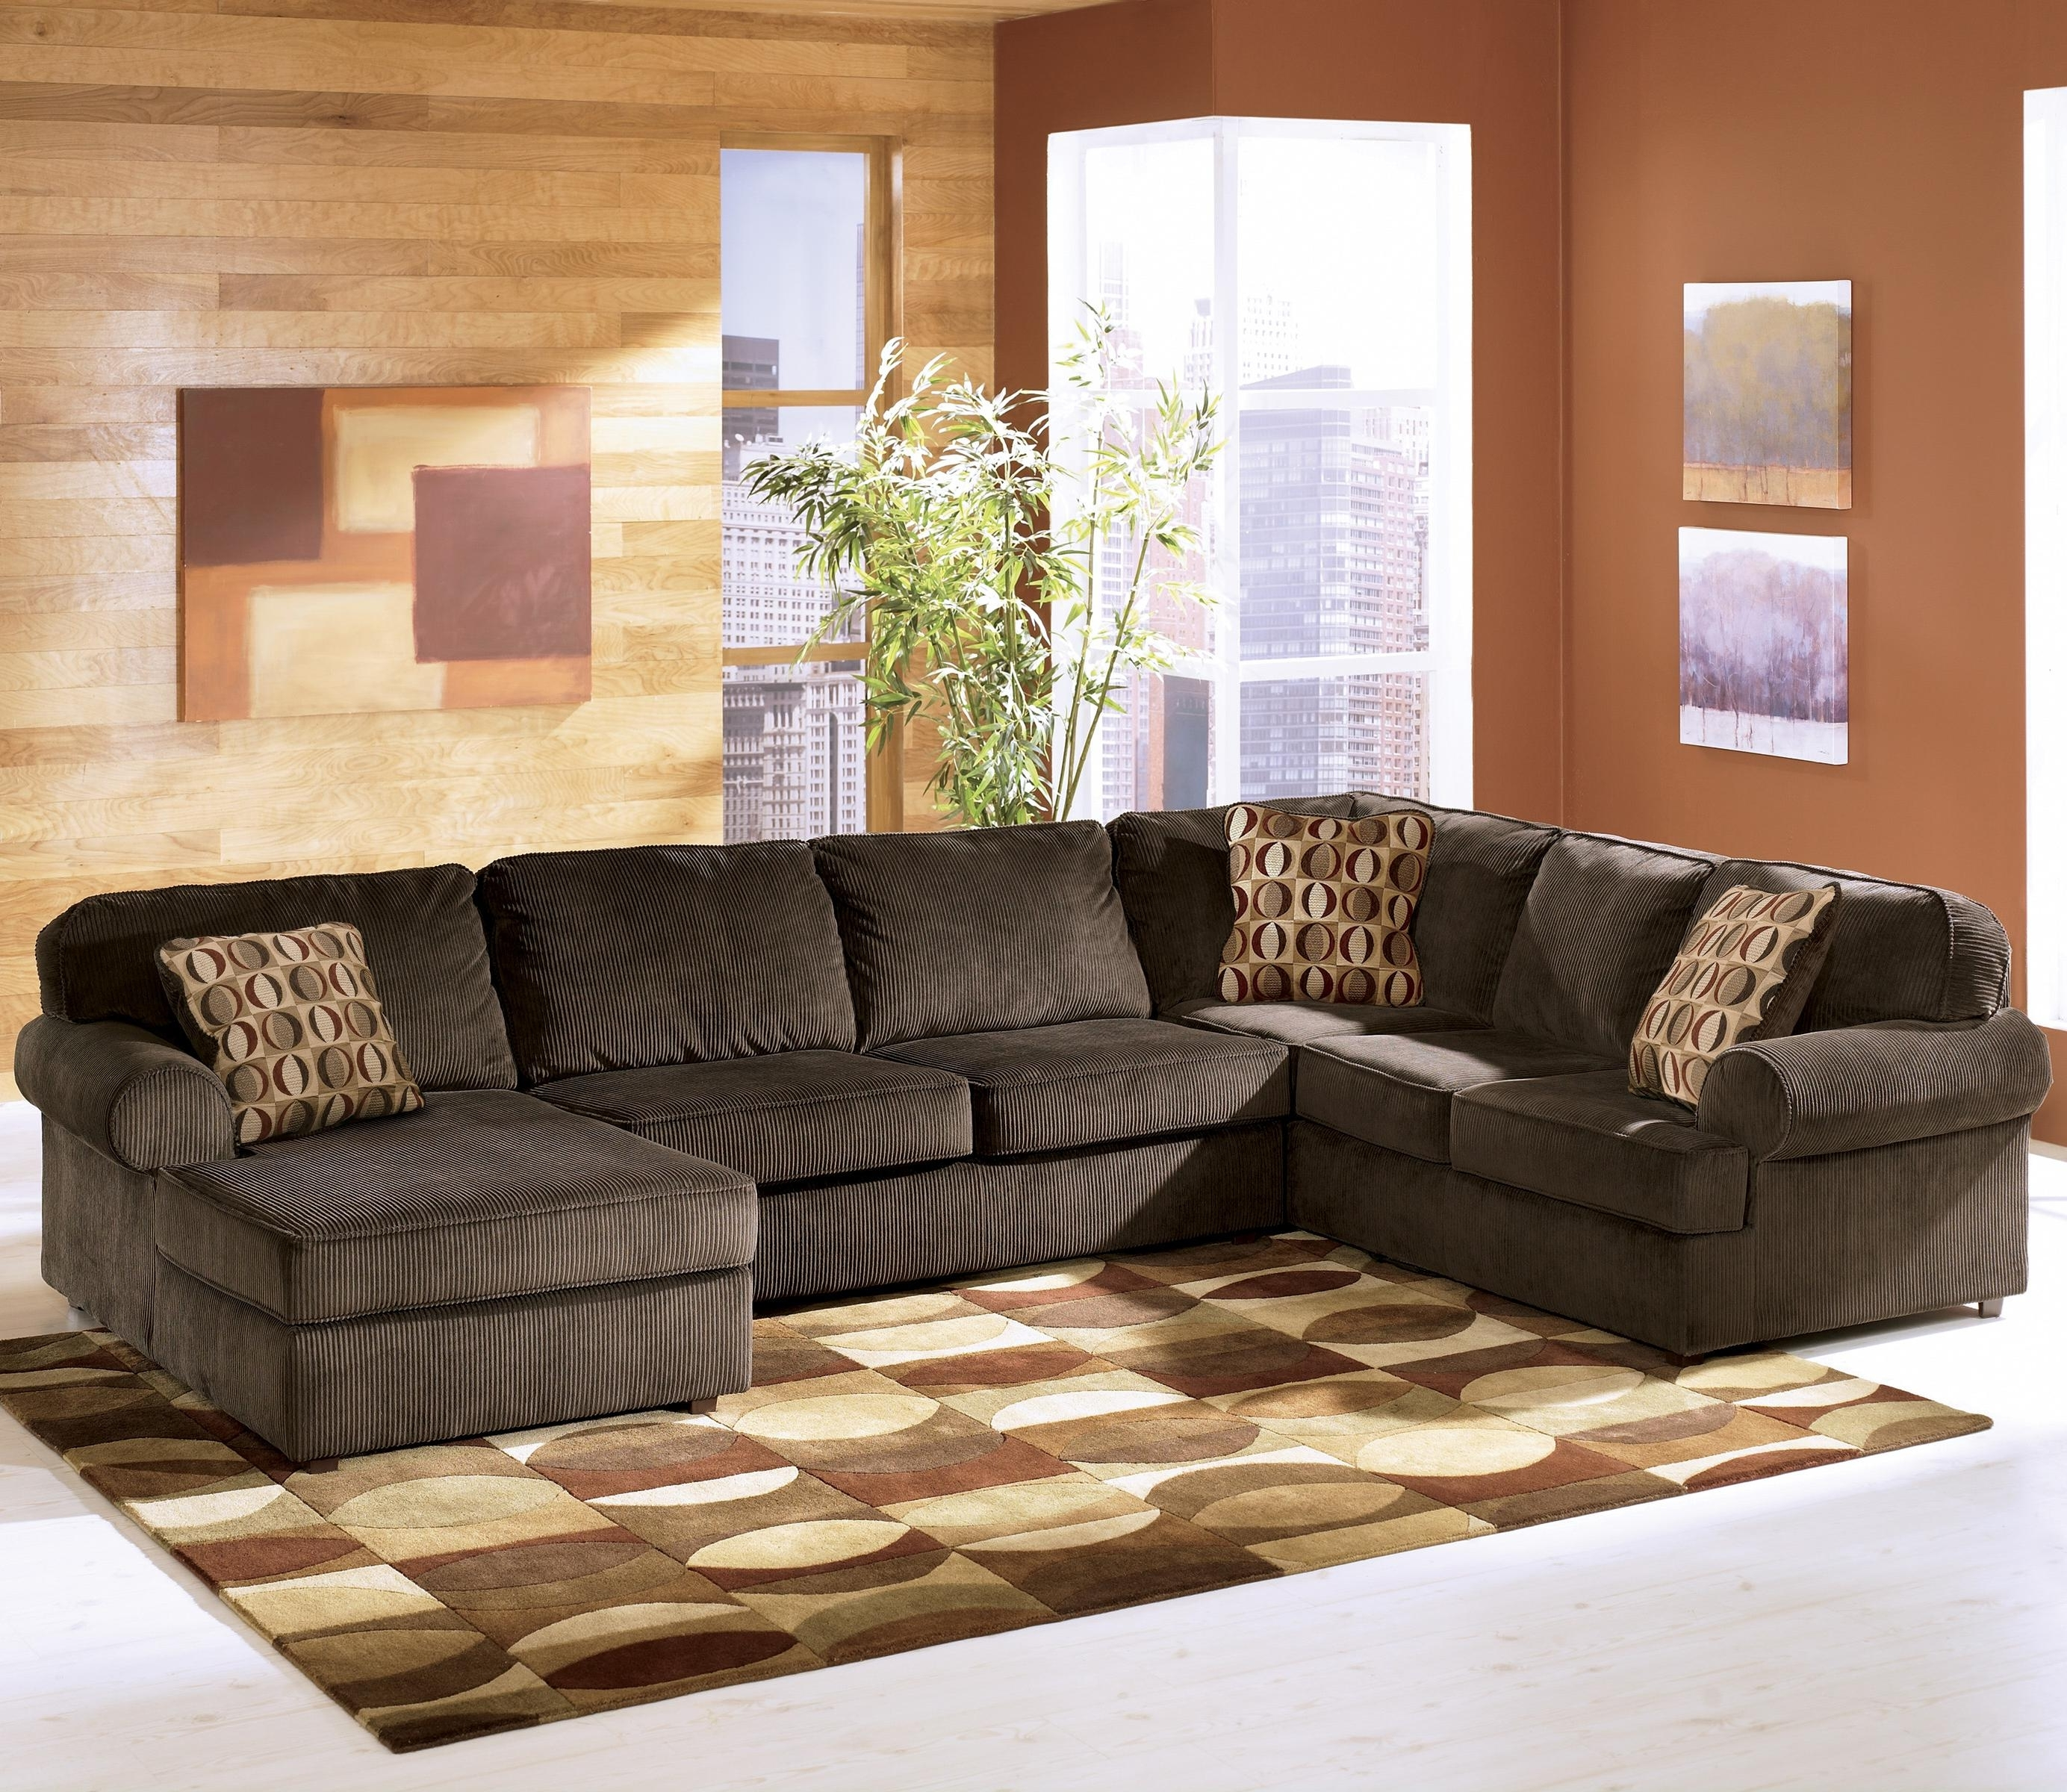 Newest Kansas City Mo Sectional Sofas With Regard To Charlton Home® Brewster Sectional Https://www (View 11 of 15)